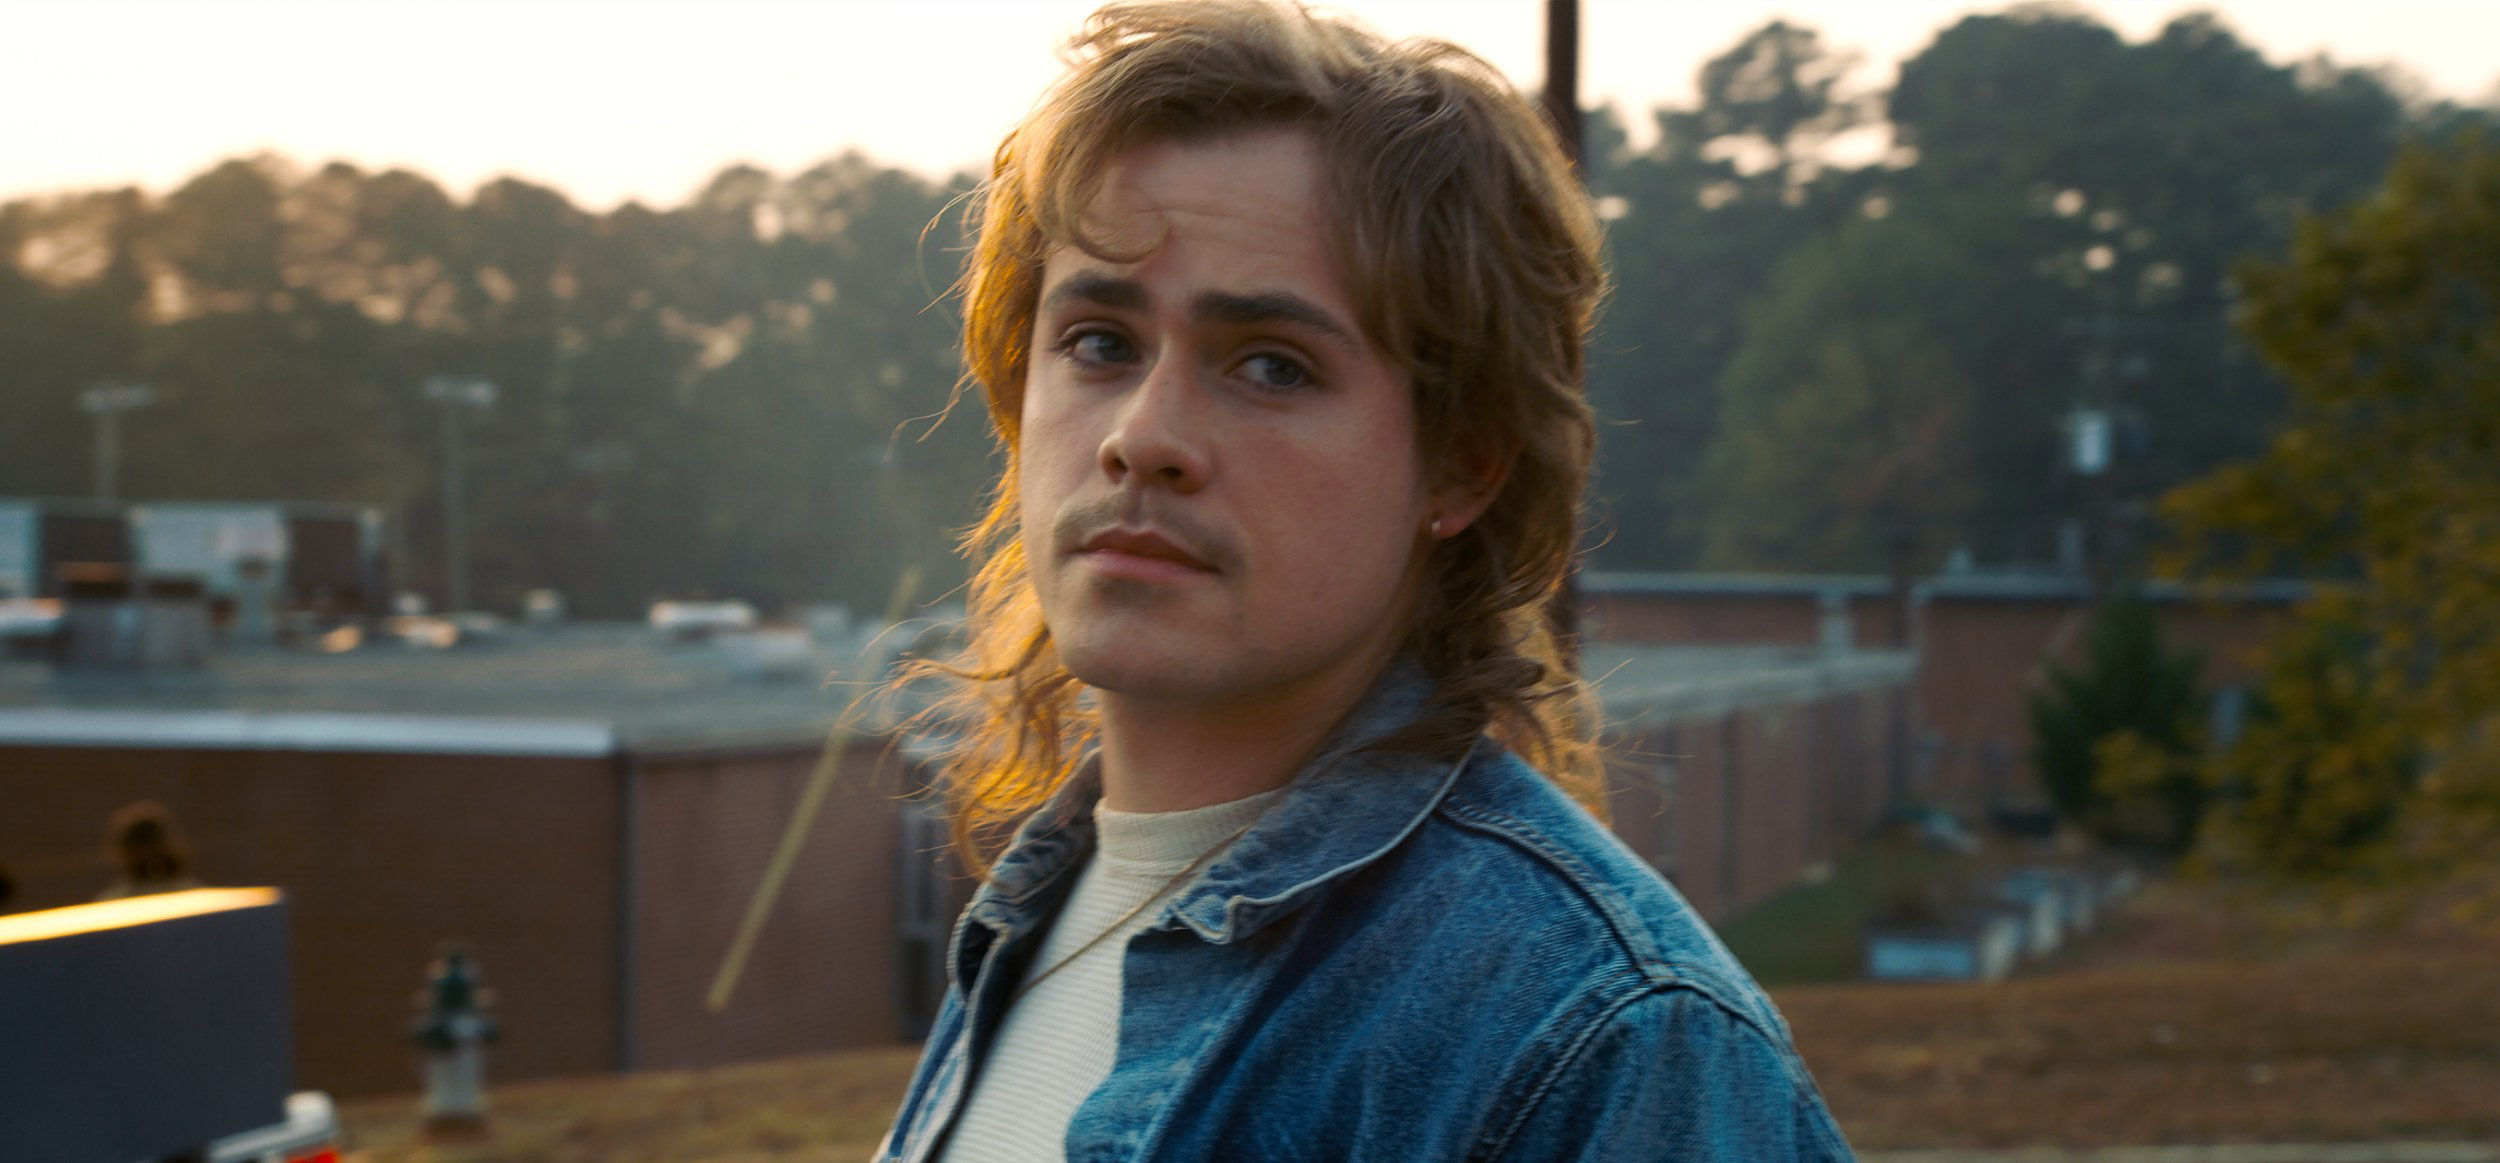 Stranger Things fans think Billy may become a monster thanks to season three trailer